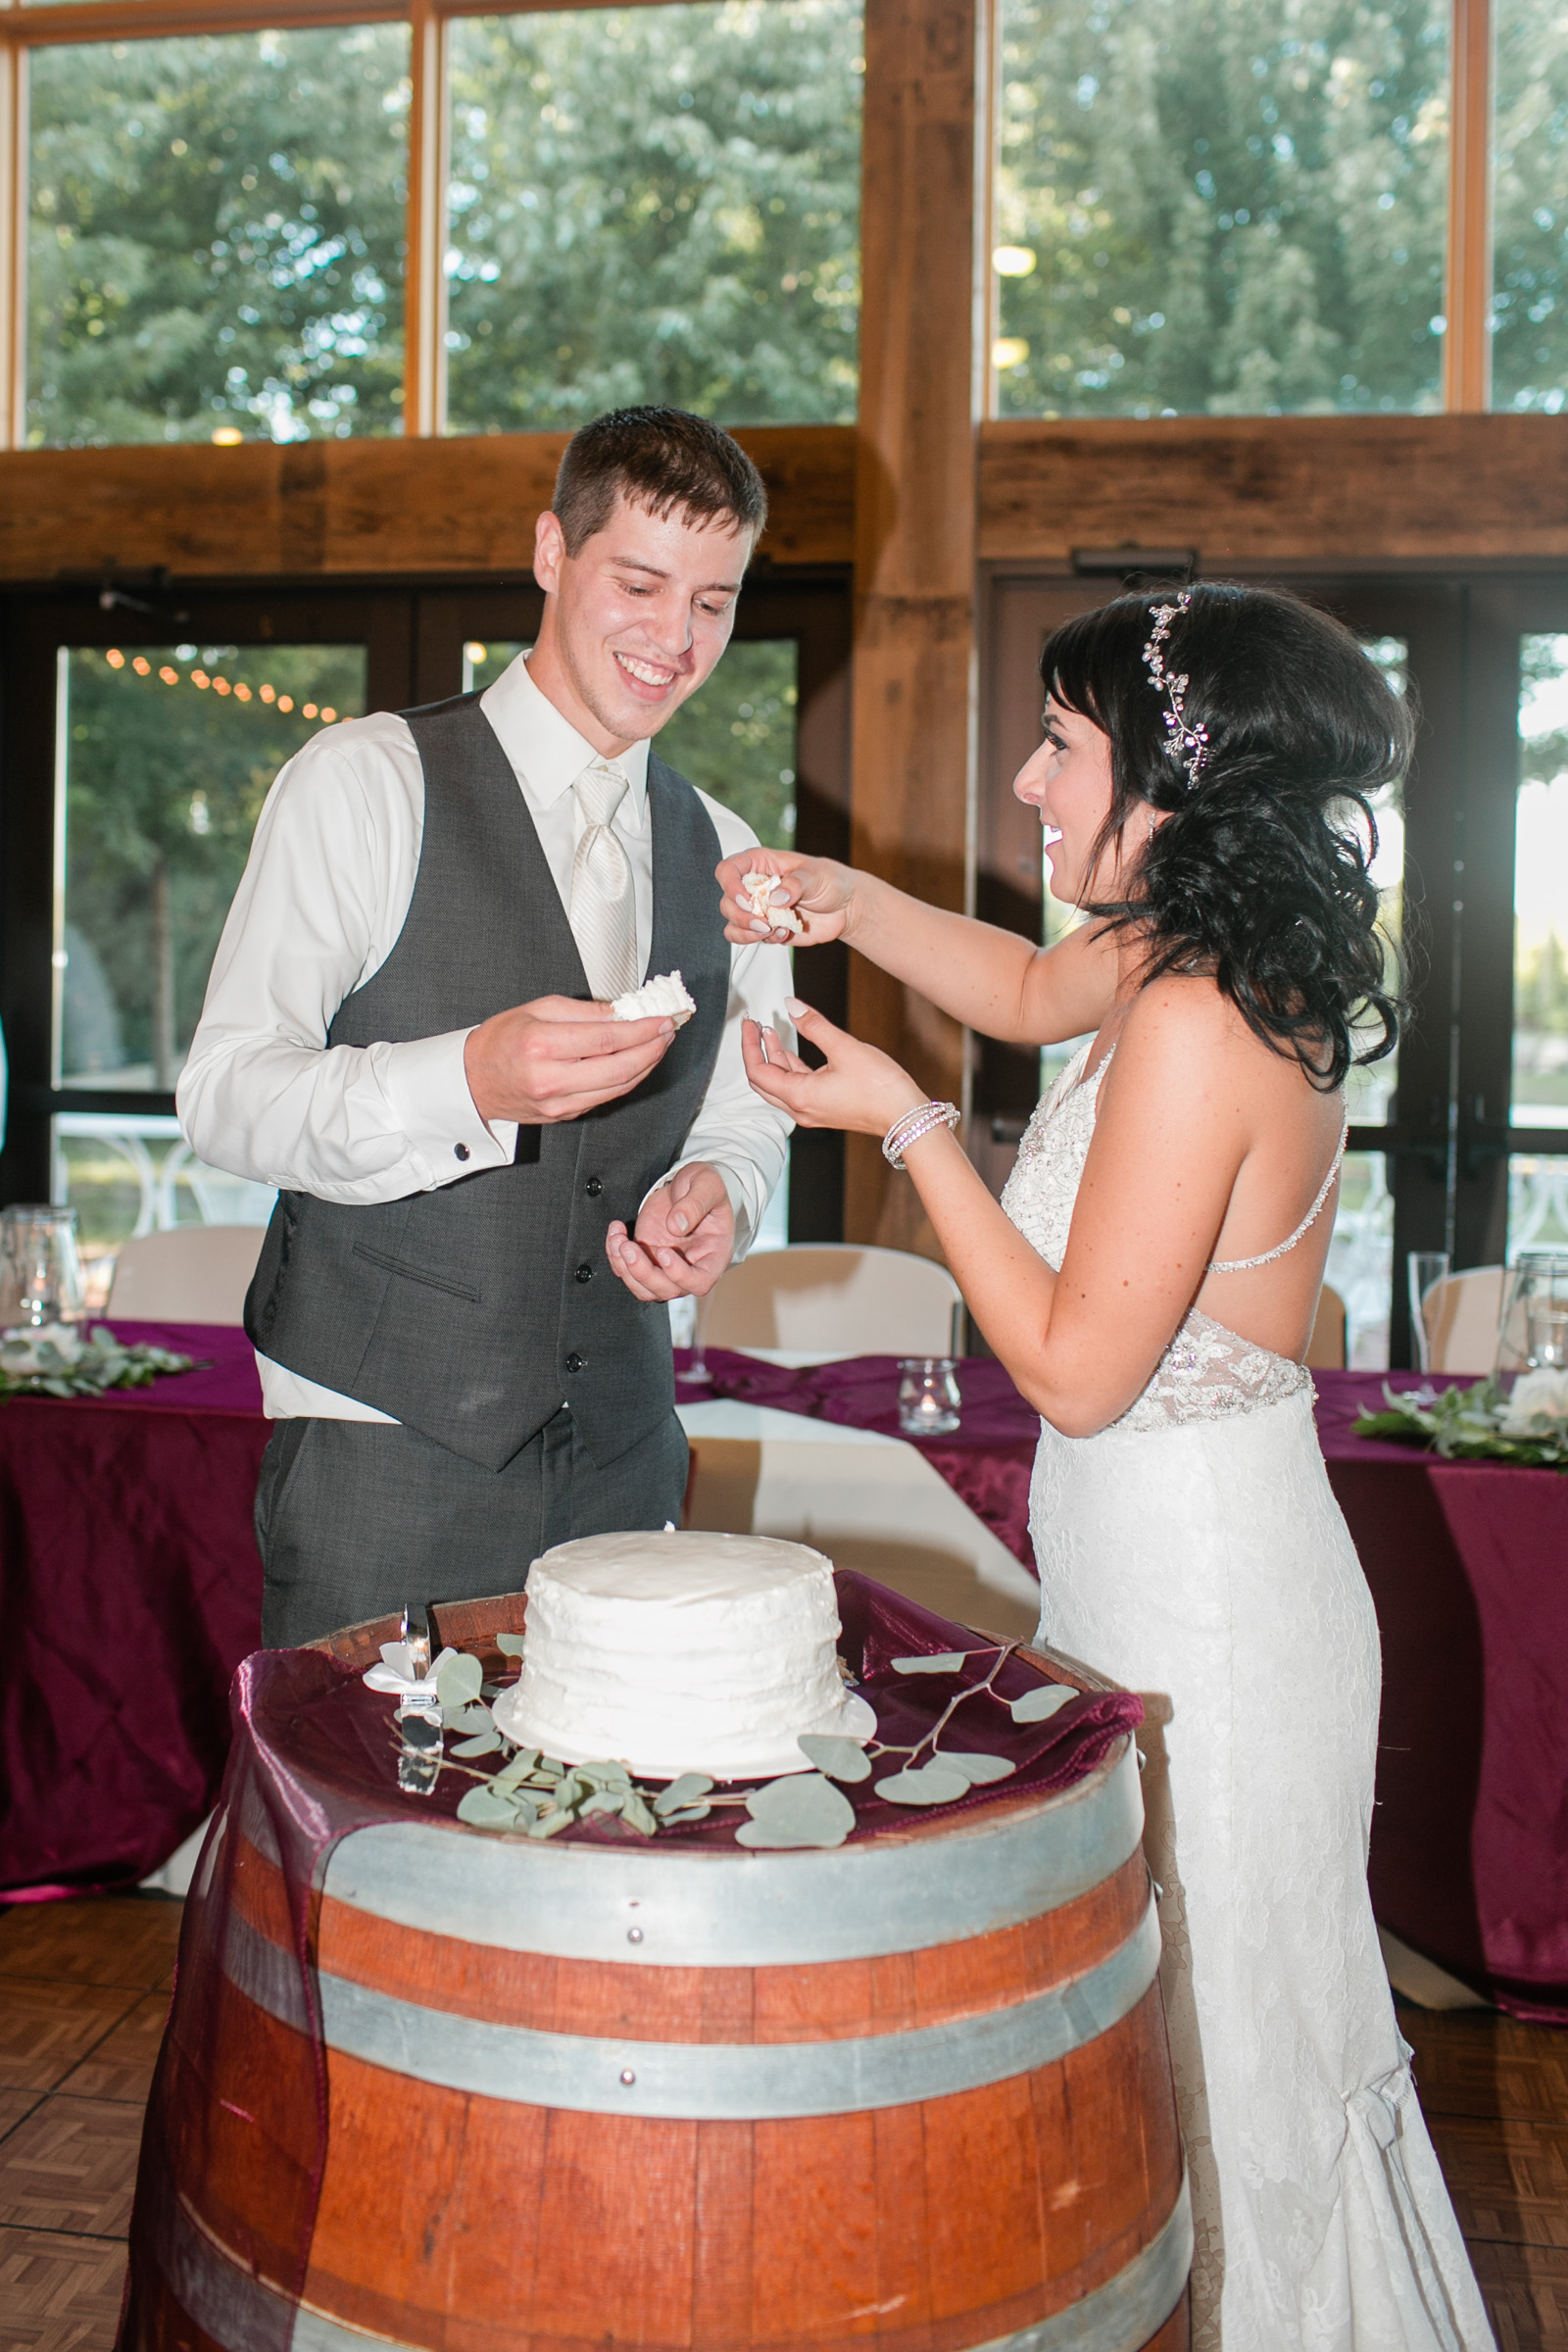 bride and groom cutting cake and smashing it in faces